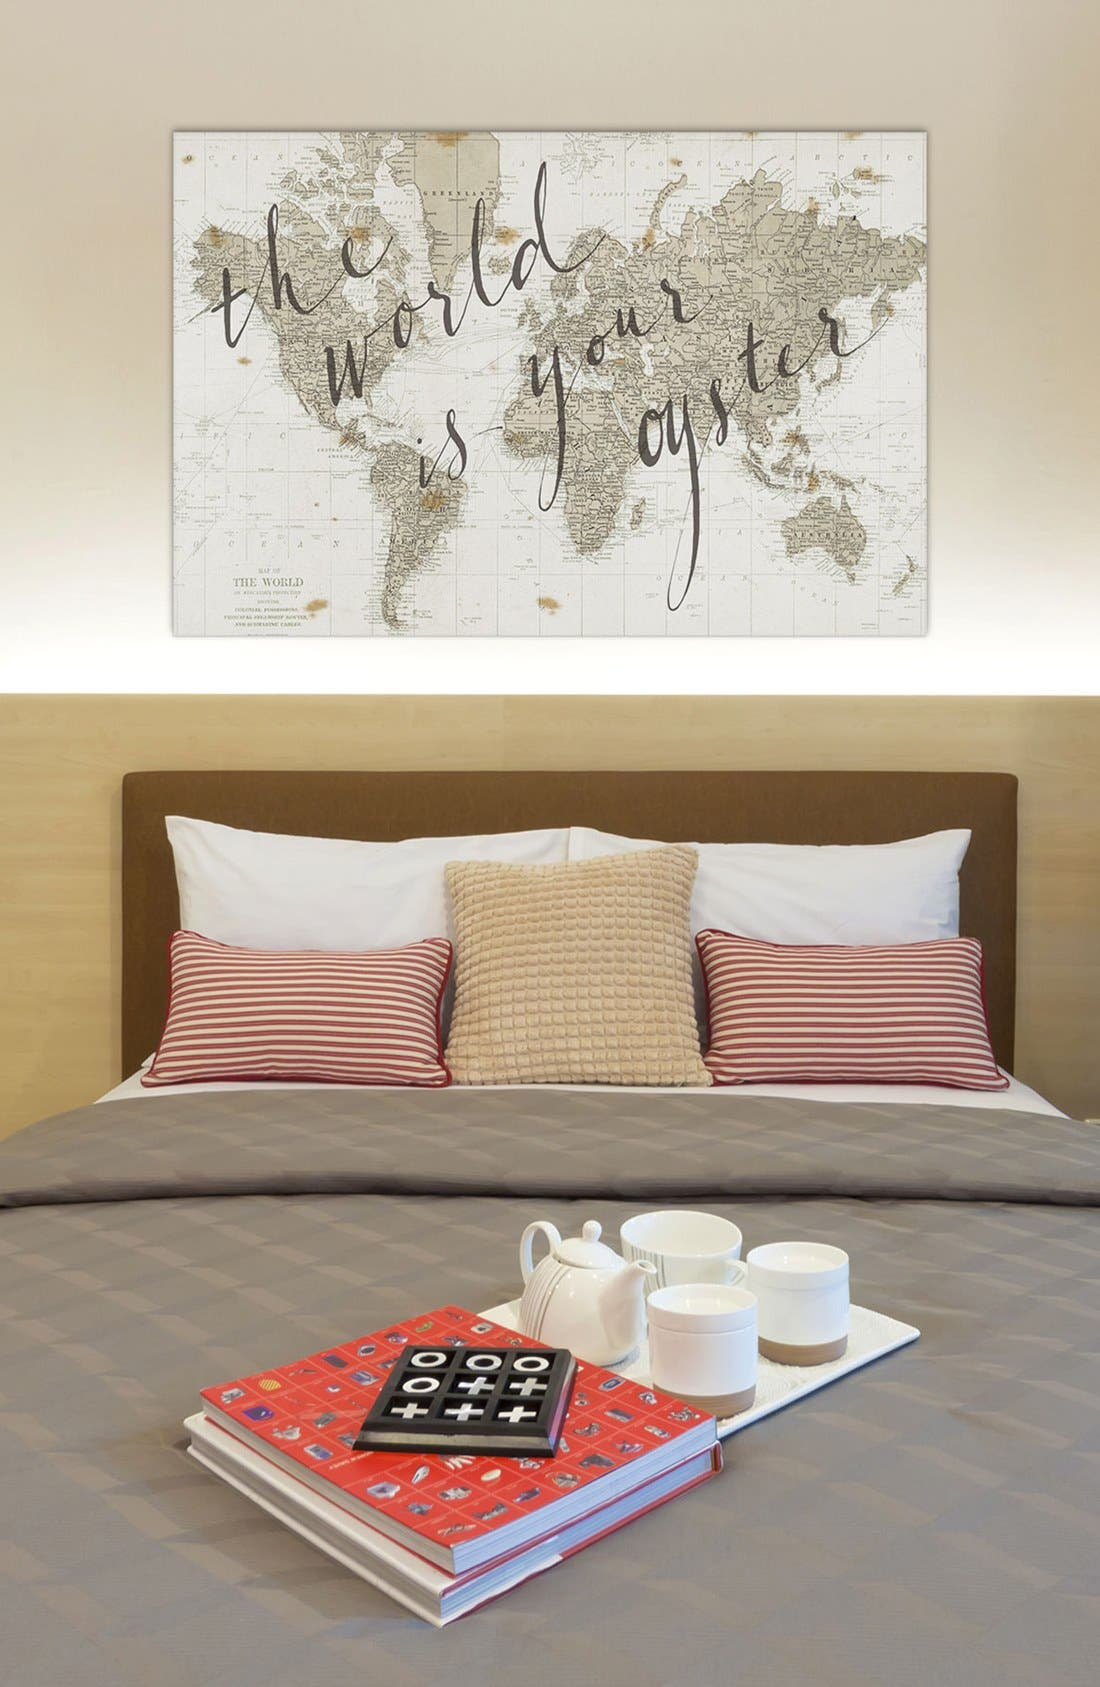 'The World is Your Oyster' Giclée Print Canvas Art,                             Alternate thumbnail 2, color,                             White